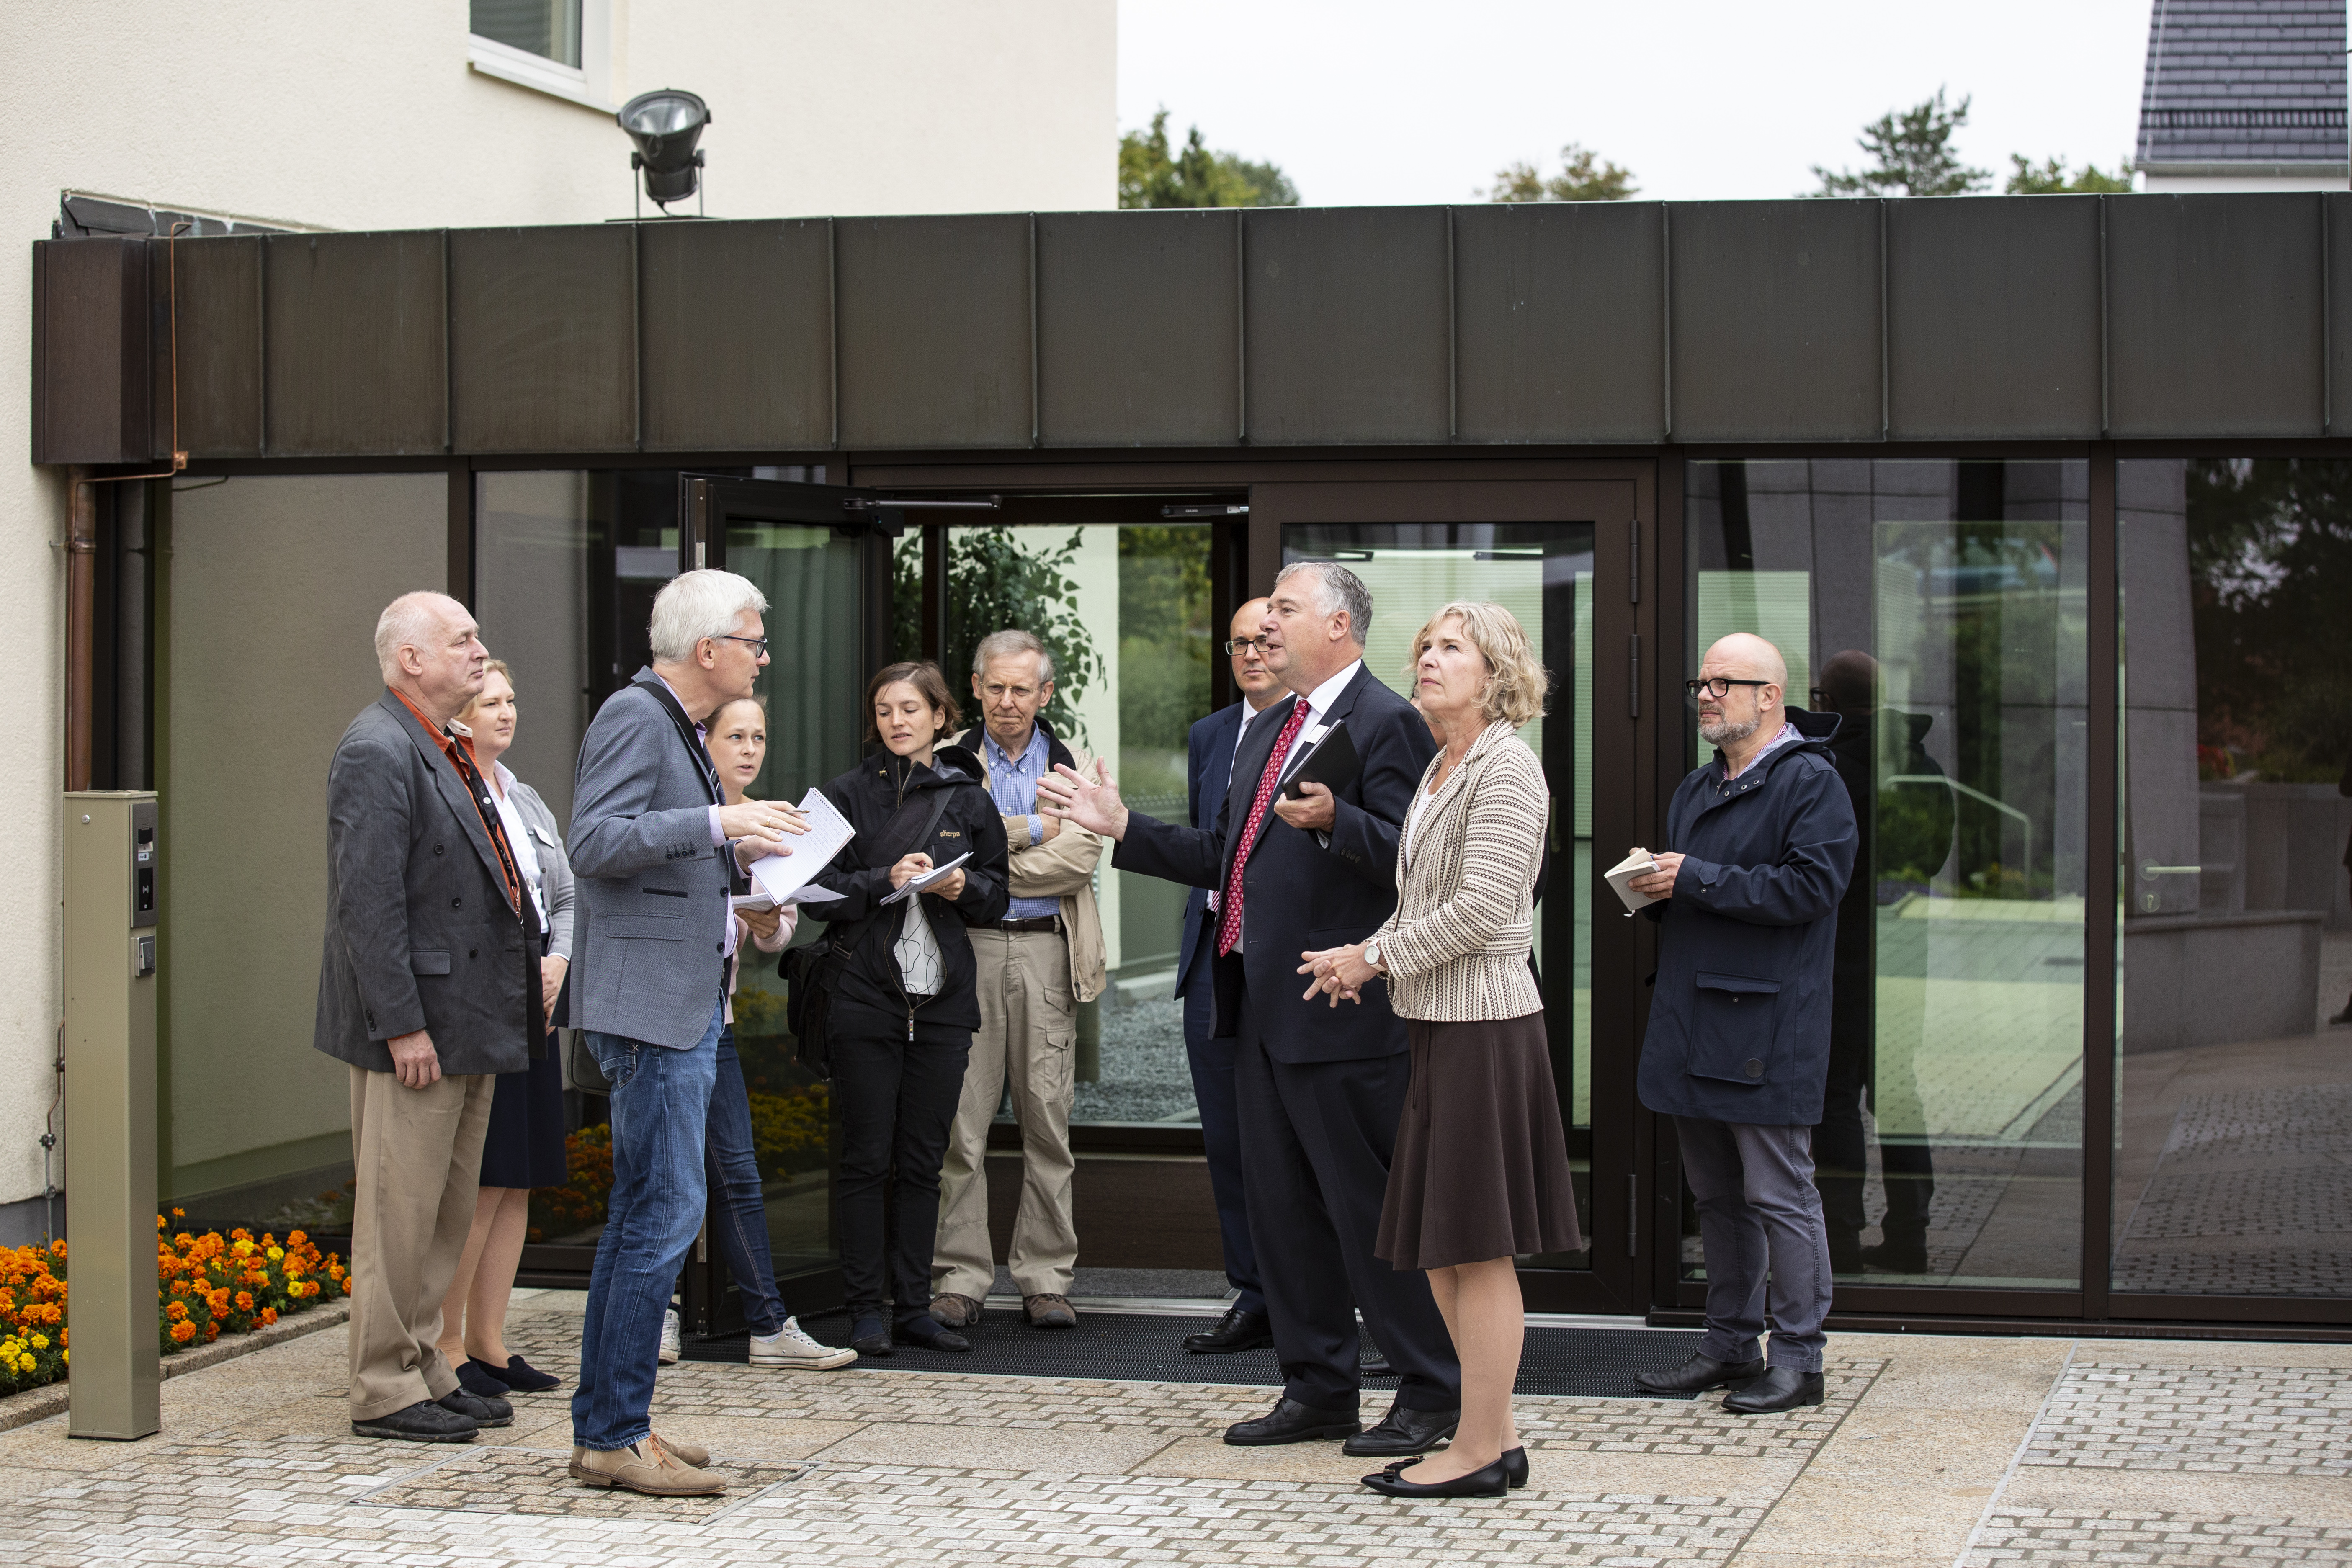 Elder Erich W. Kopischke, center, speaks to German reporters on the patio between the Friedrichsdorf stake center and the Frankfurt Temple on Monday, Sept. 9, 2019. Elder Kopischke, a General Authority Seventy and counselor in the Europe Area Presidency, gave the reporters a tour of the renovated temple after a press briefing about the open house, which begins Friday and runs through Sept. 28.